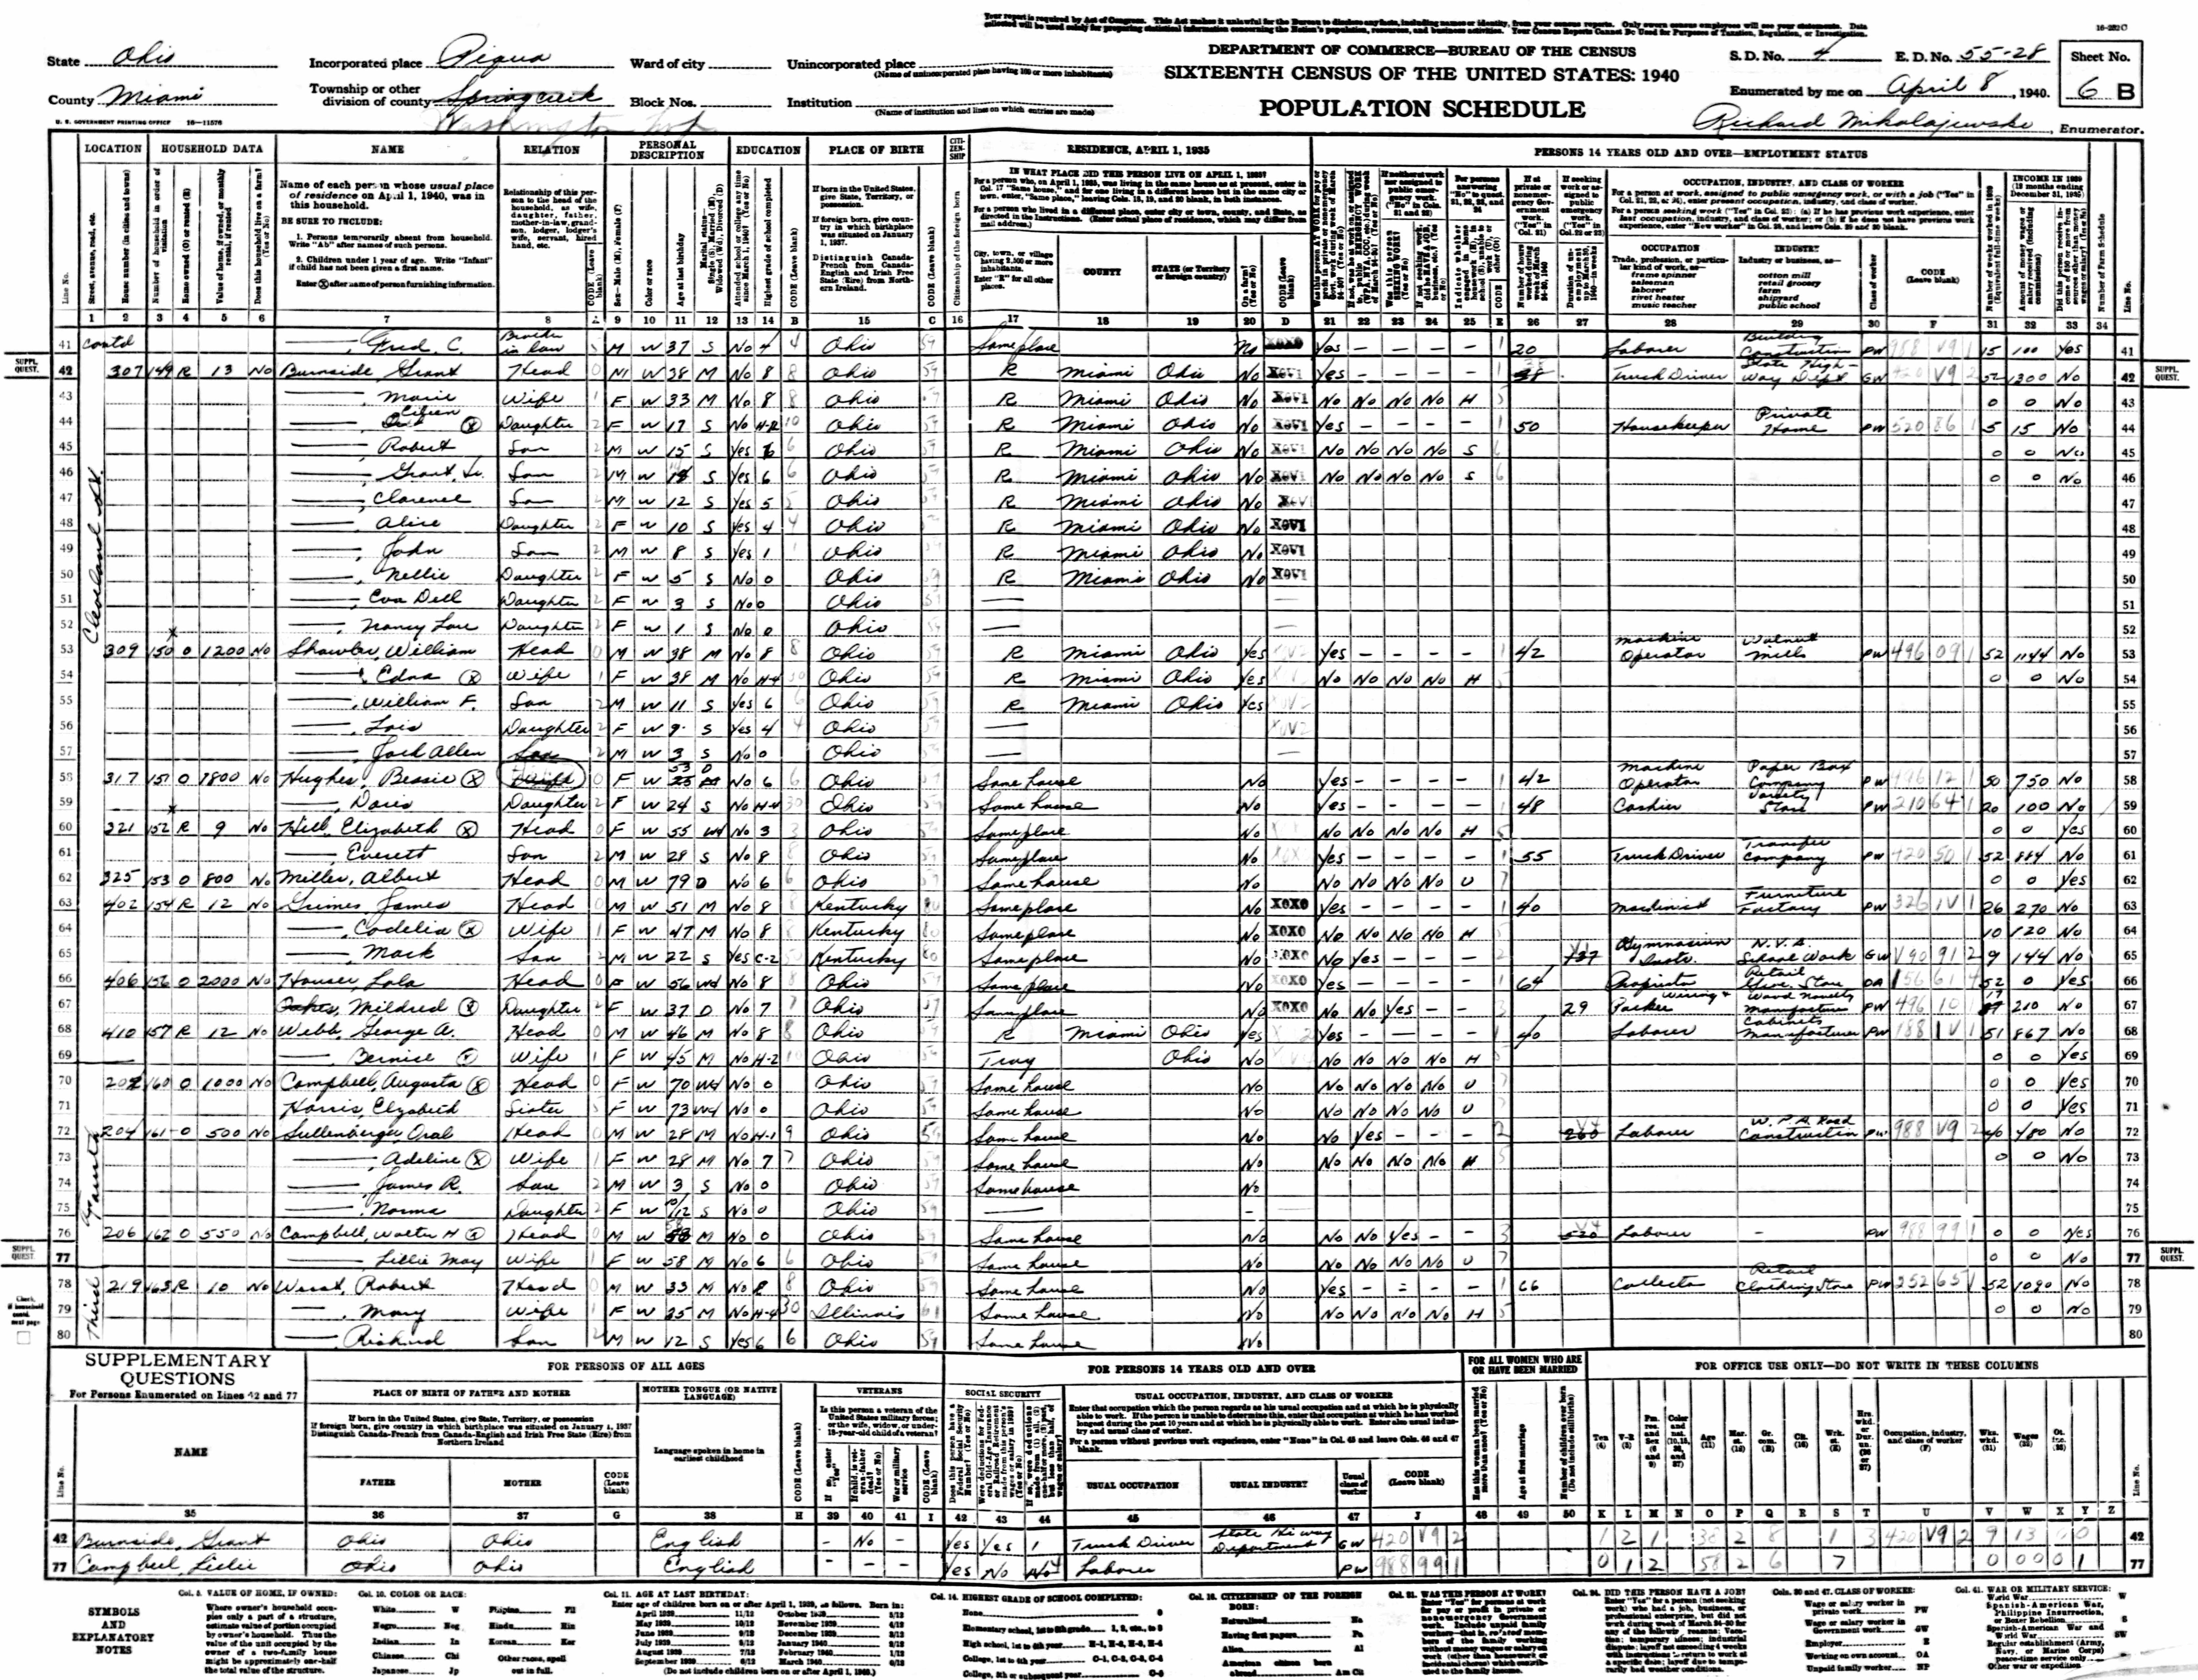 Henry Sowers   Marriages  Children - Us census bureau ohio counties